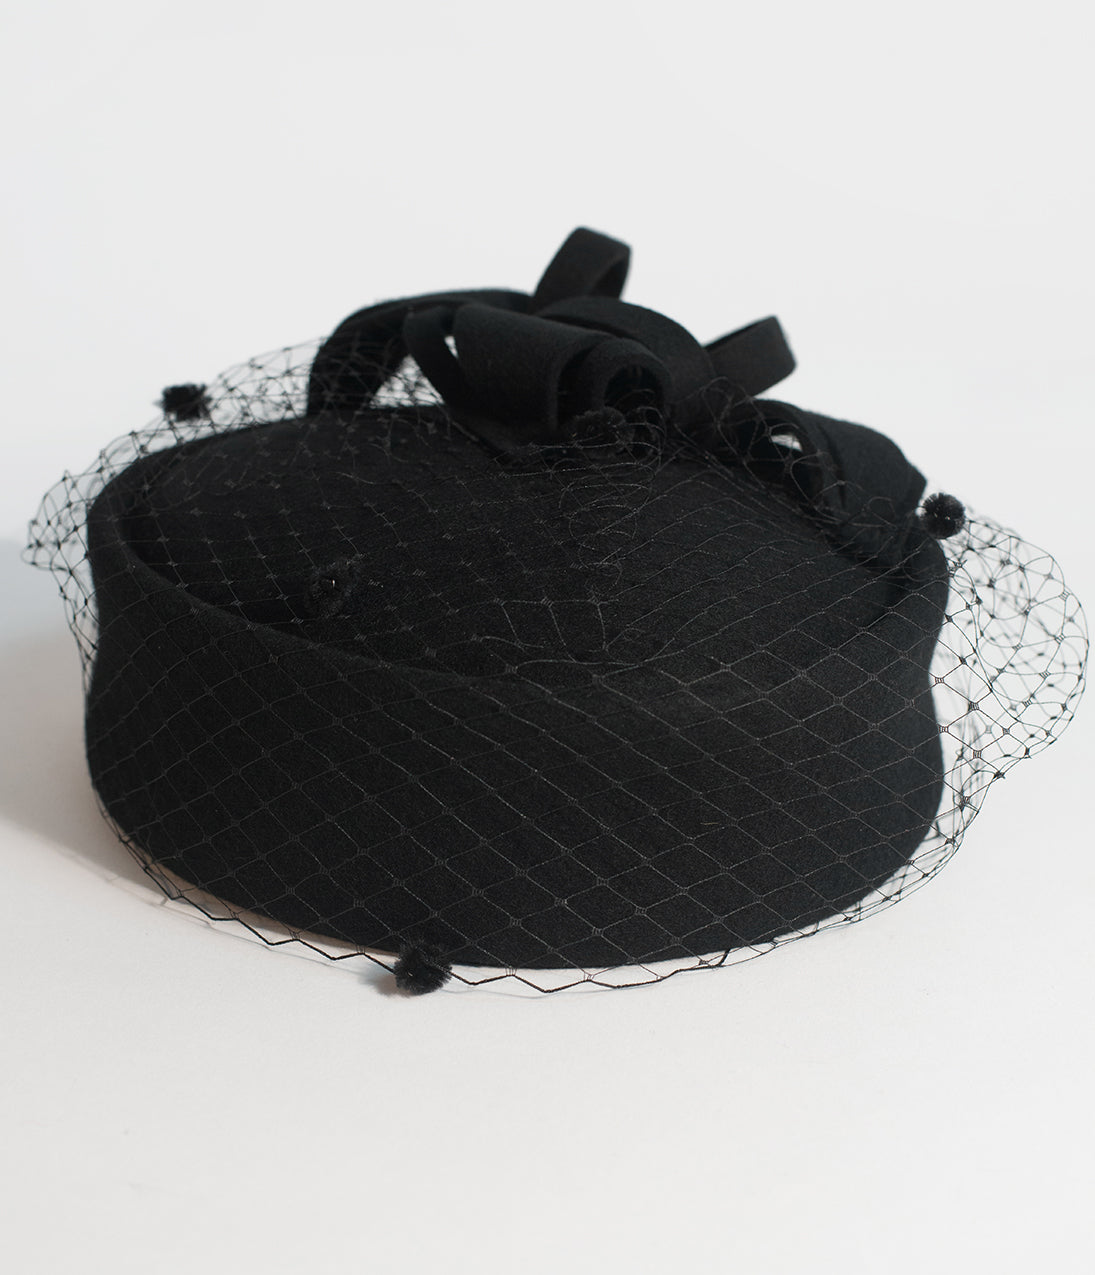 1950s Women's Hat Styles & History Unique Vintage Black Wool Netted Pillbox Hat $62.00 AT vintagedancer.com